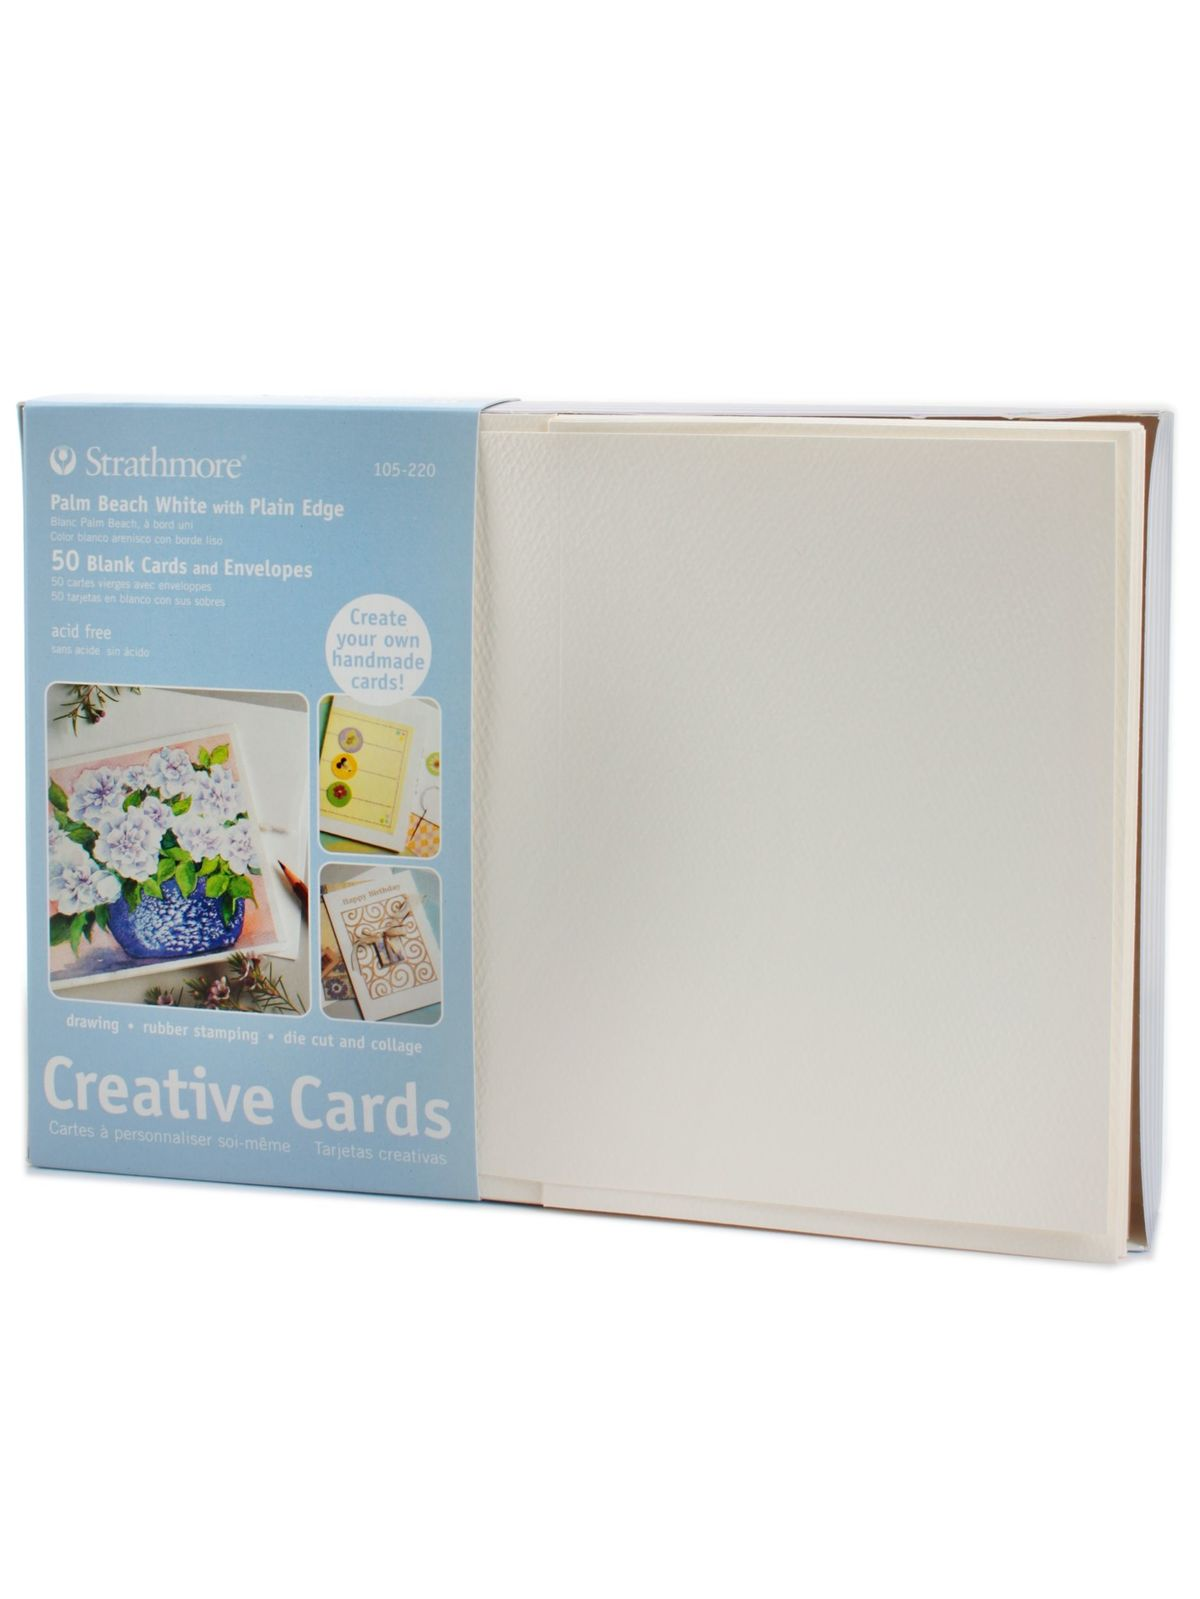 Strathmore blank greeting cards with envelopes misterart blank greeting cards with envelopes palm beach white with no deckle pack of 50 m4hsunfo